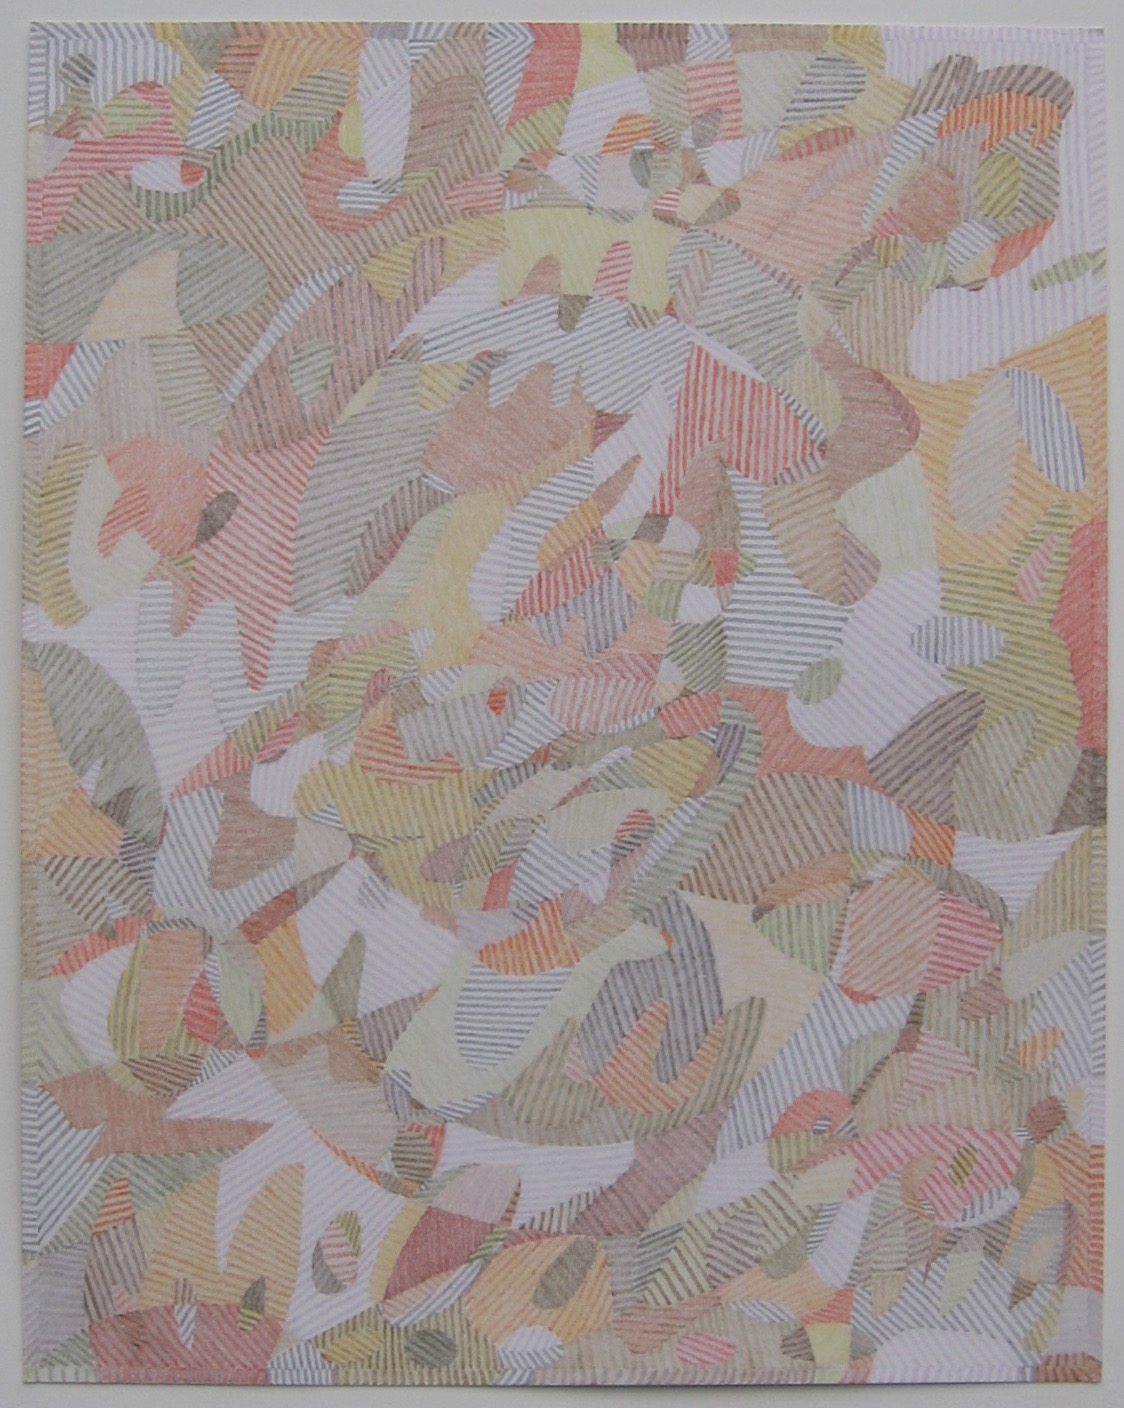 """Lg Drawing No. 1               2016 Colored pencil on paper 19  """" x 24  """" $3,2  00 (framed)"""